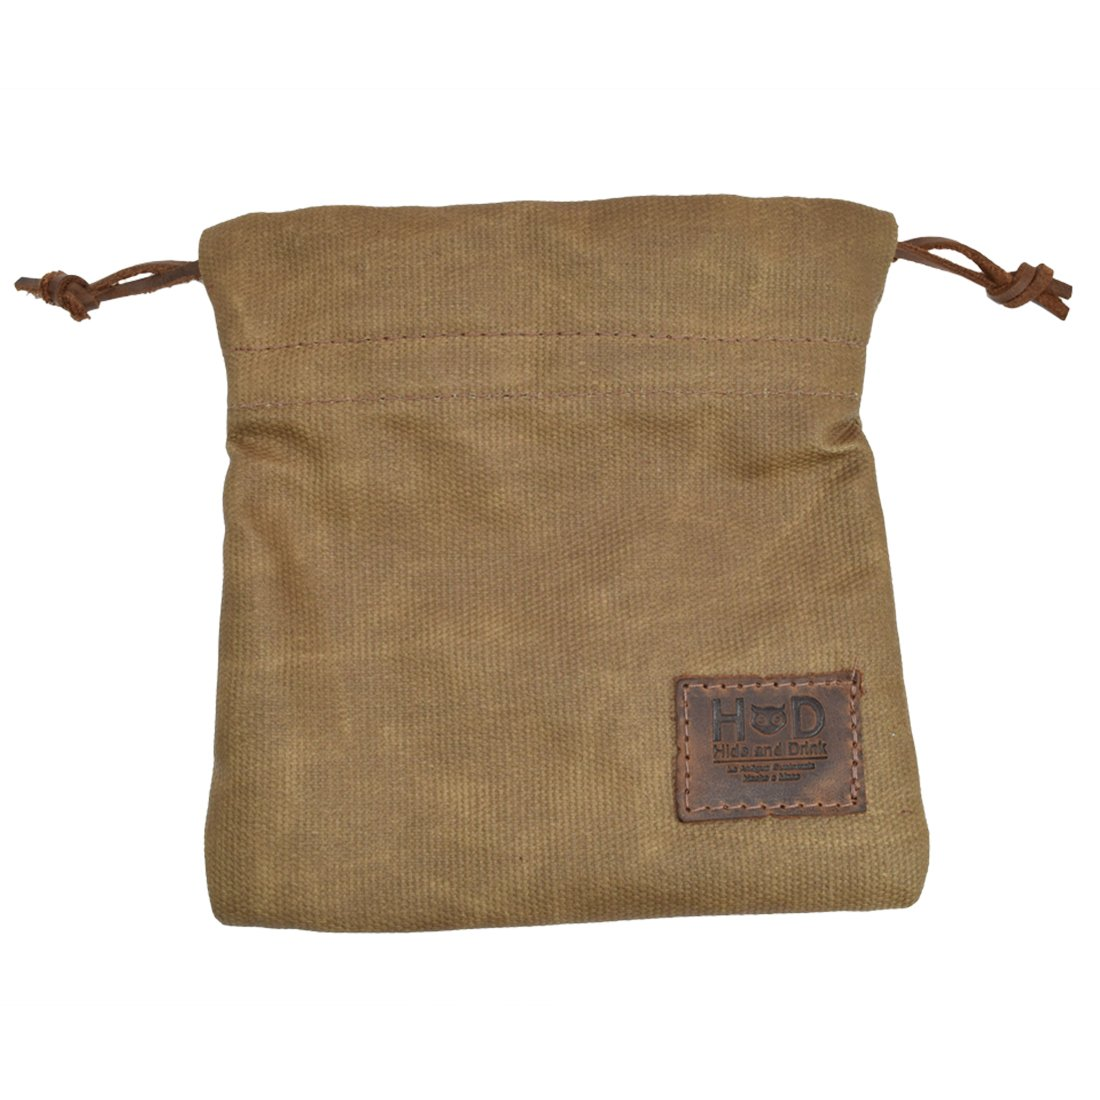 Hide & Drink Waxed Canvas Golf Valuables Field/Travel / Tech/Board Game Dice Pouch Handmade by Fatigue by Hide & Drink (Image #3)